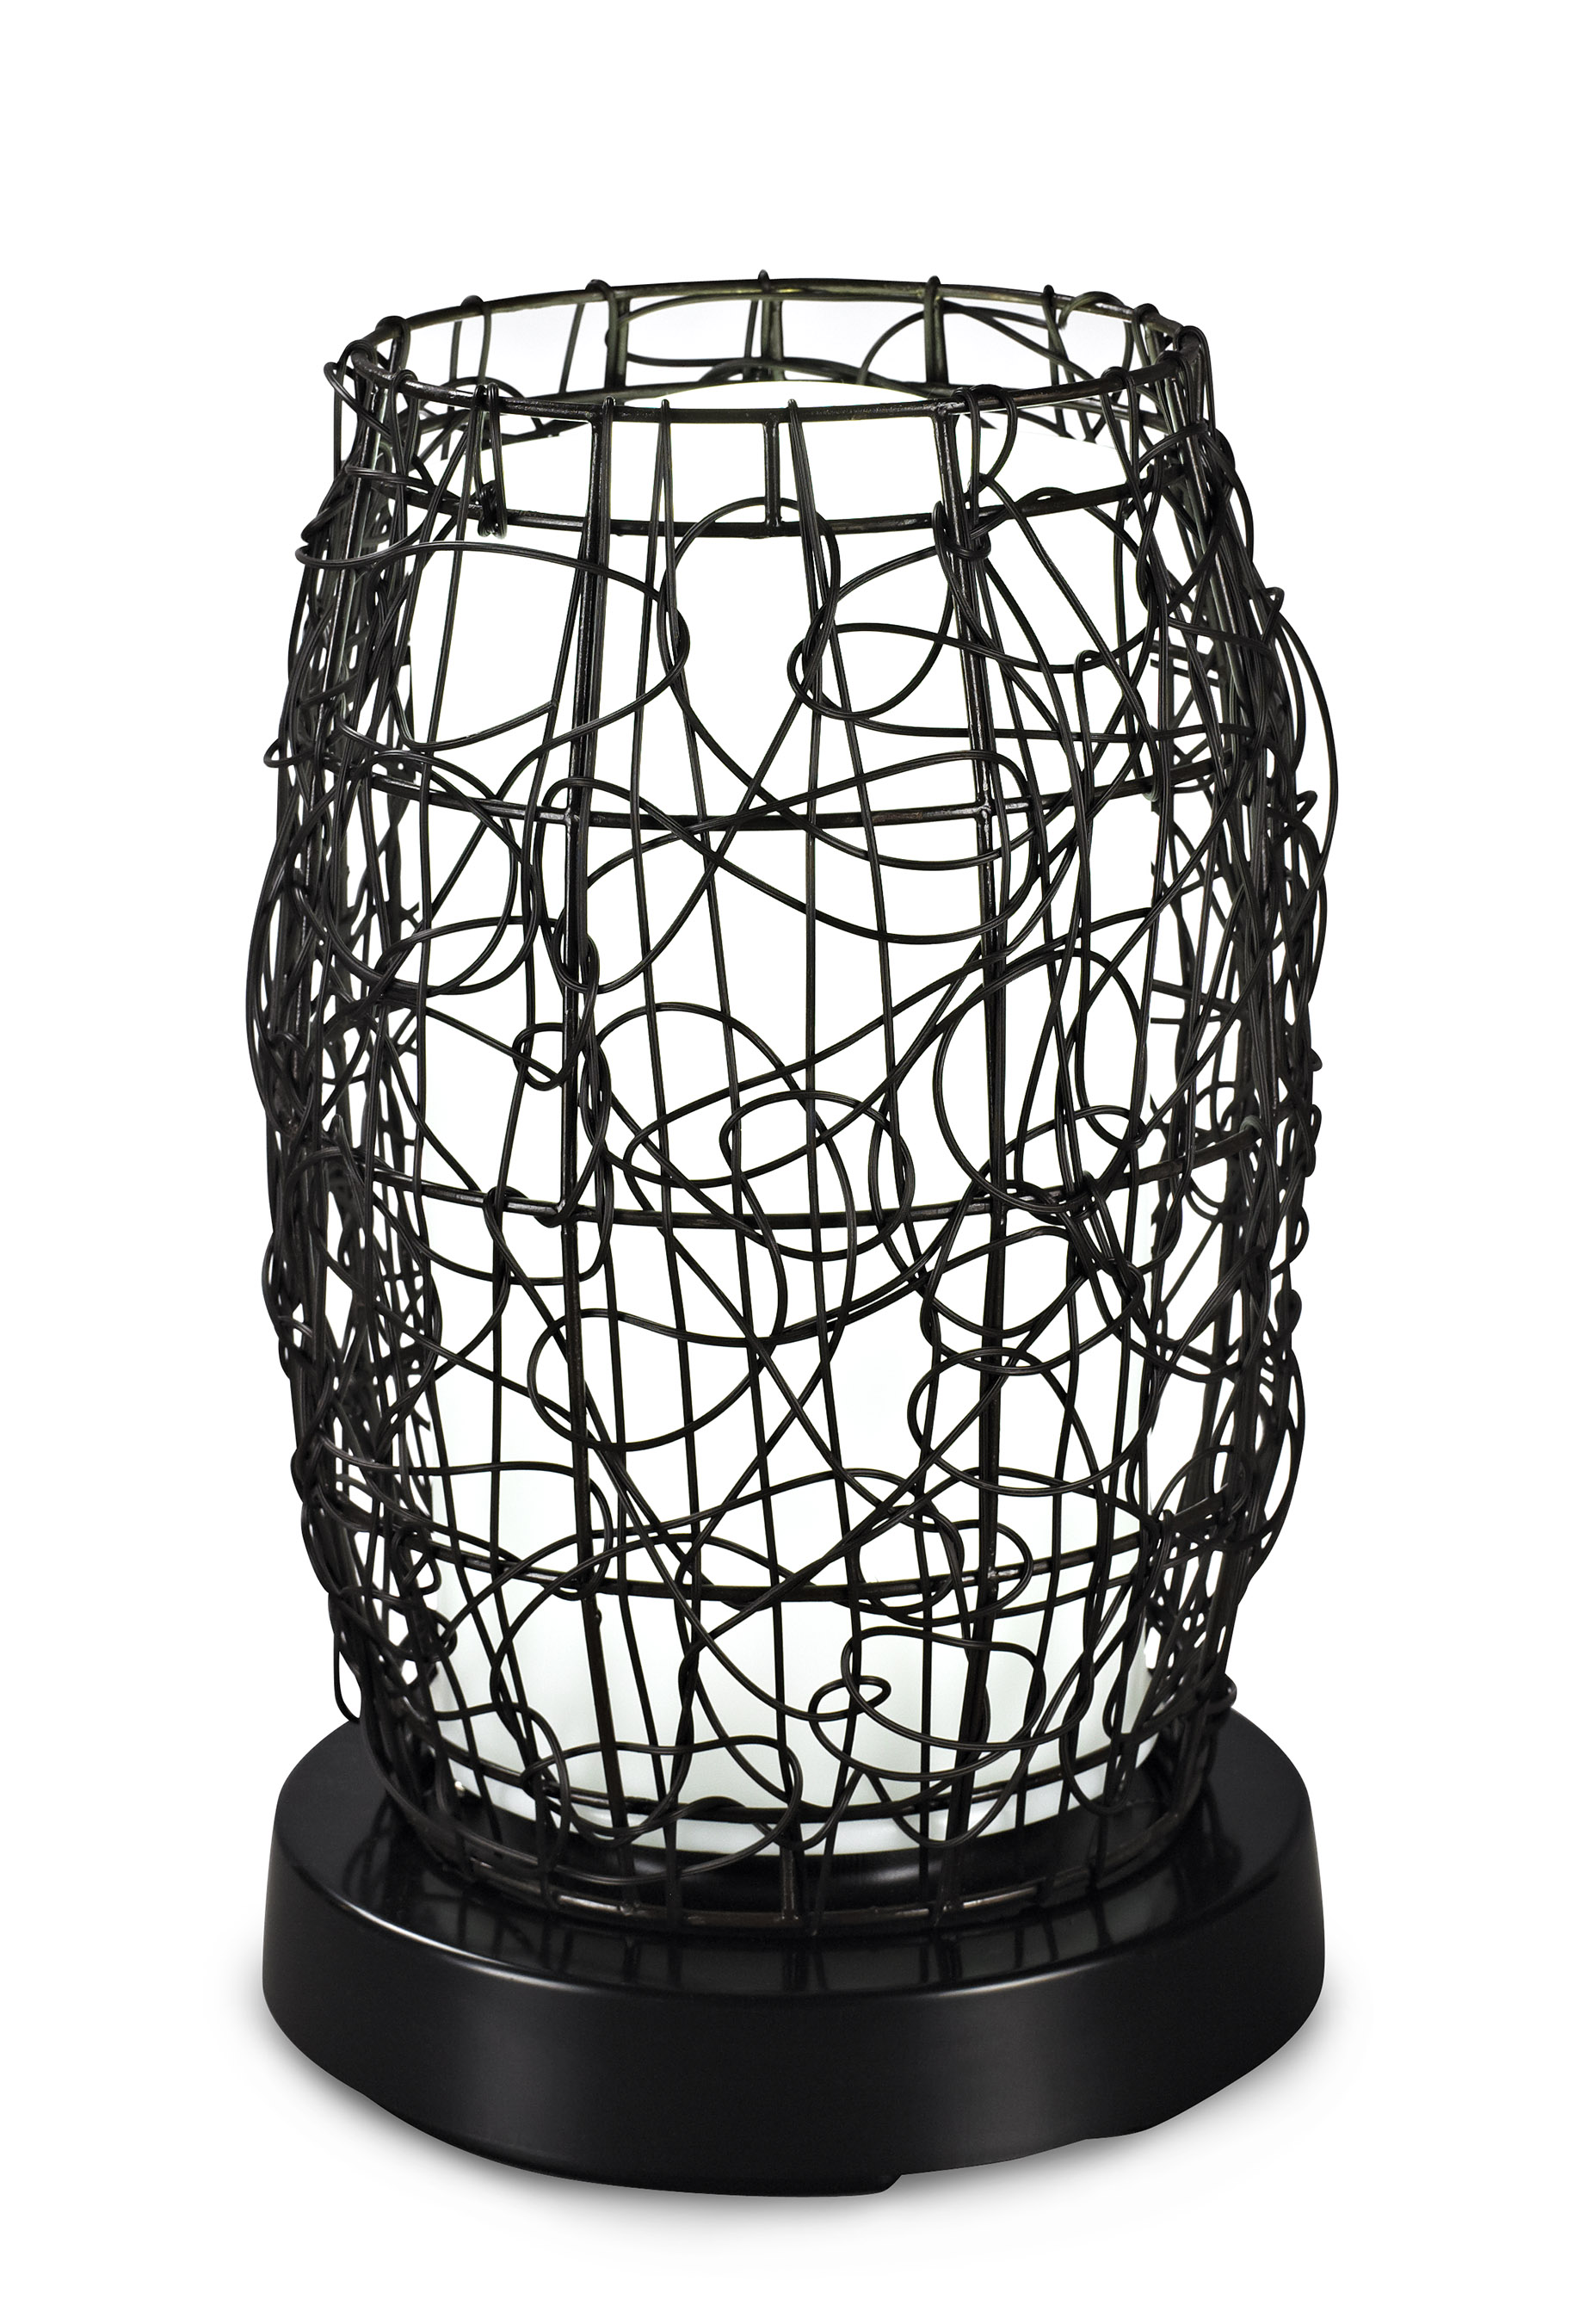 PatioGlo LED Table Lamp, Color Changing, Walnut Random Weave Resin Wicker Cover 16